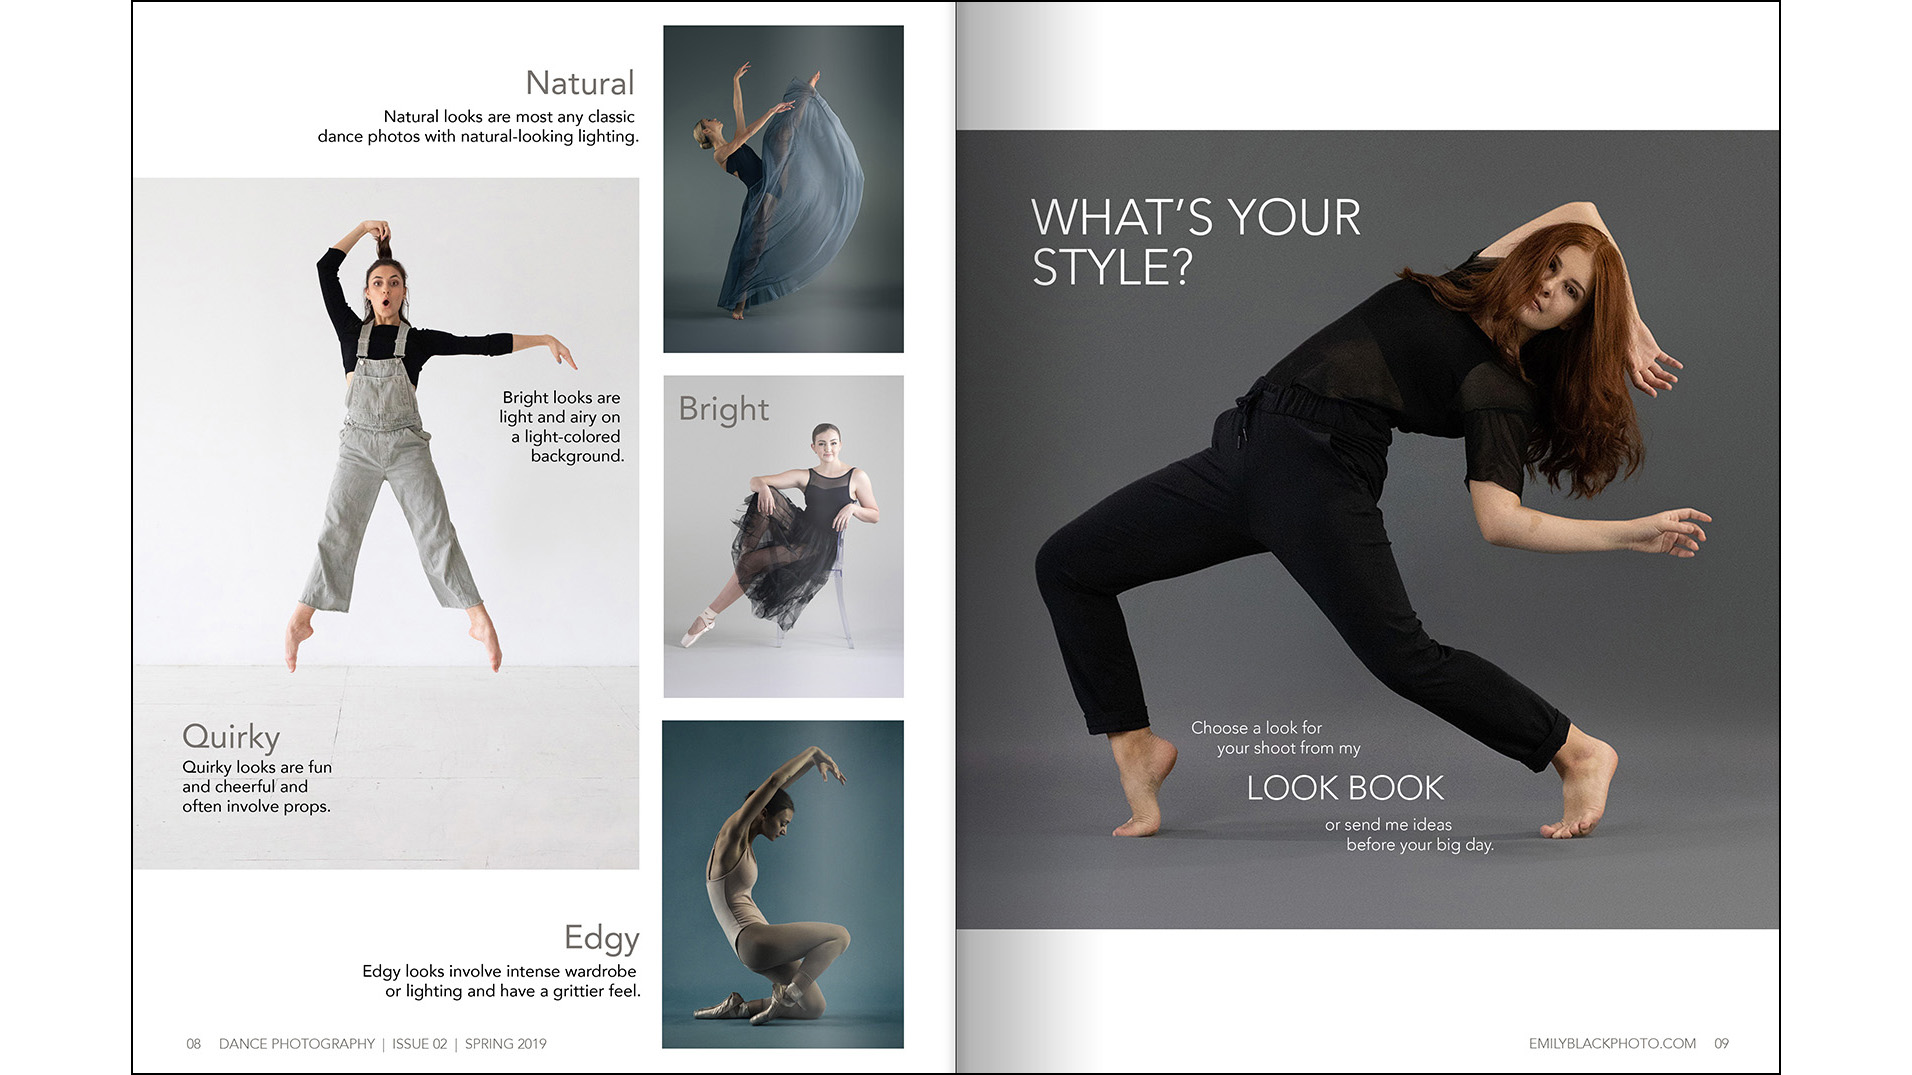 Look Book - I encourage clients to choose a style from my Look Book to streamline the planning process. They can choose Quirky, Natural, Bright, or Edgy to help me decide which backdrops and props I should prepare.